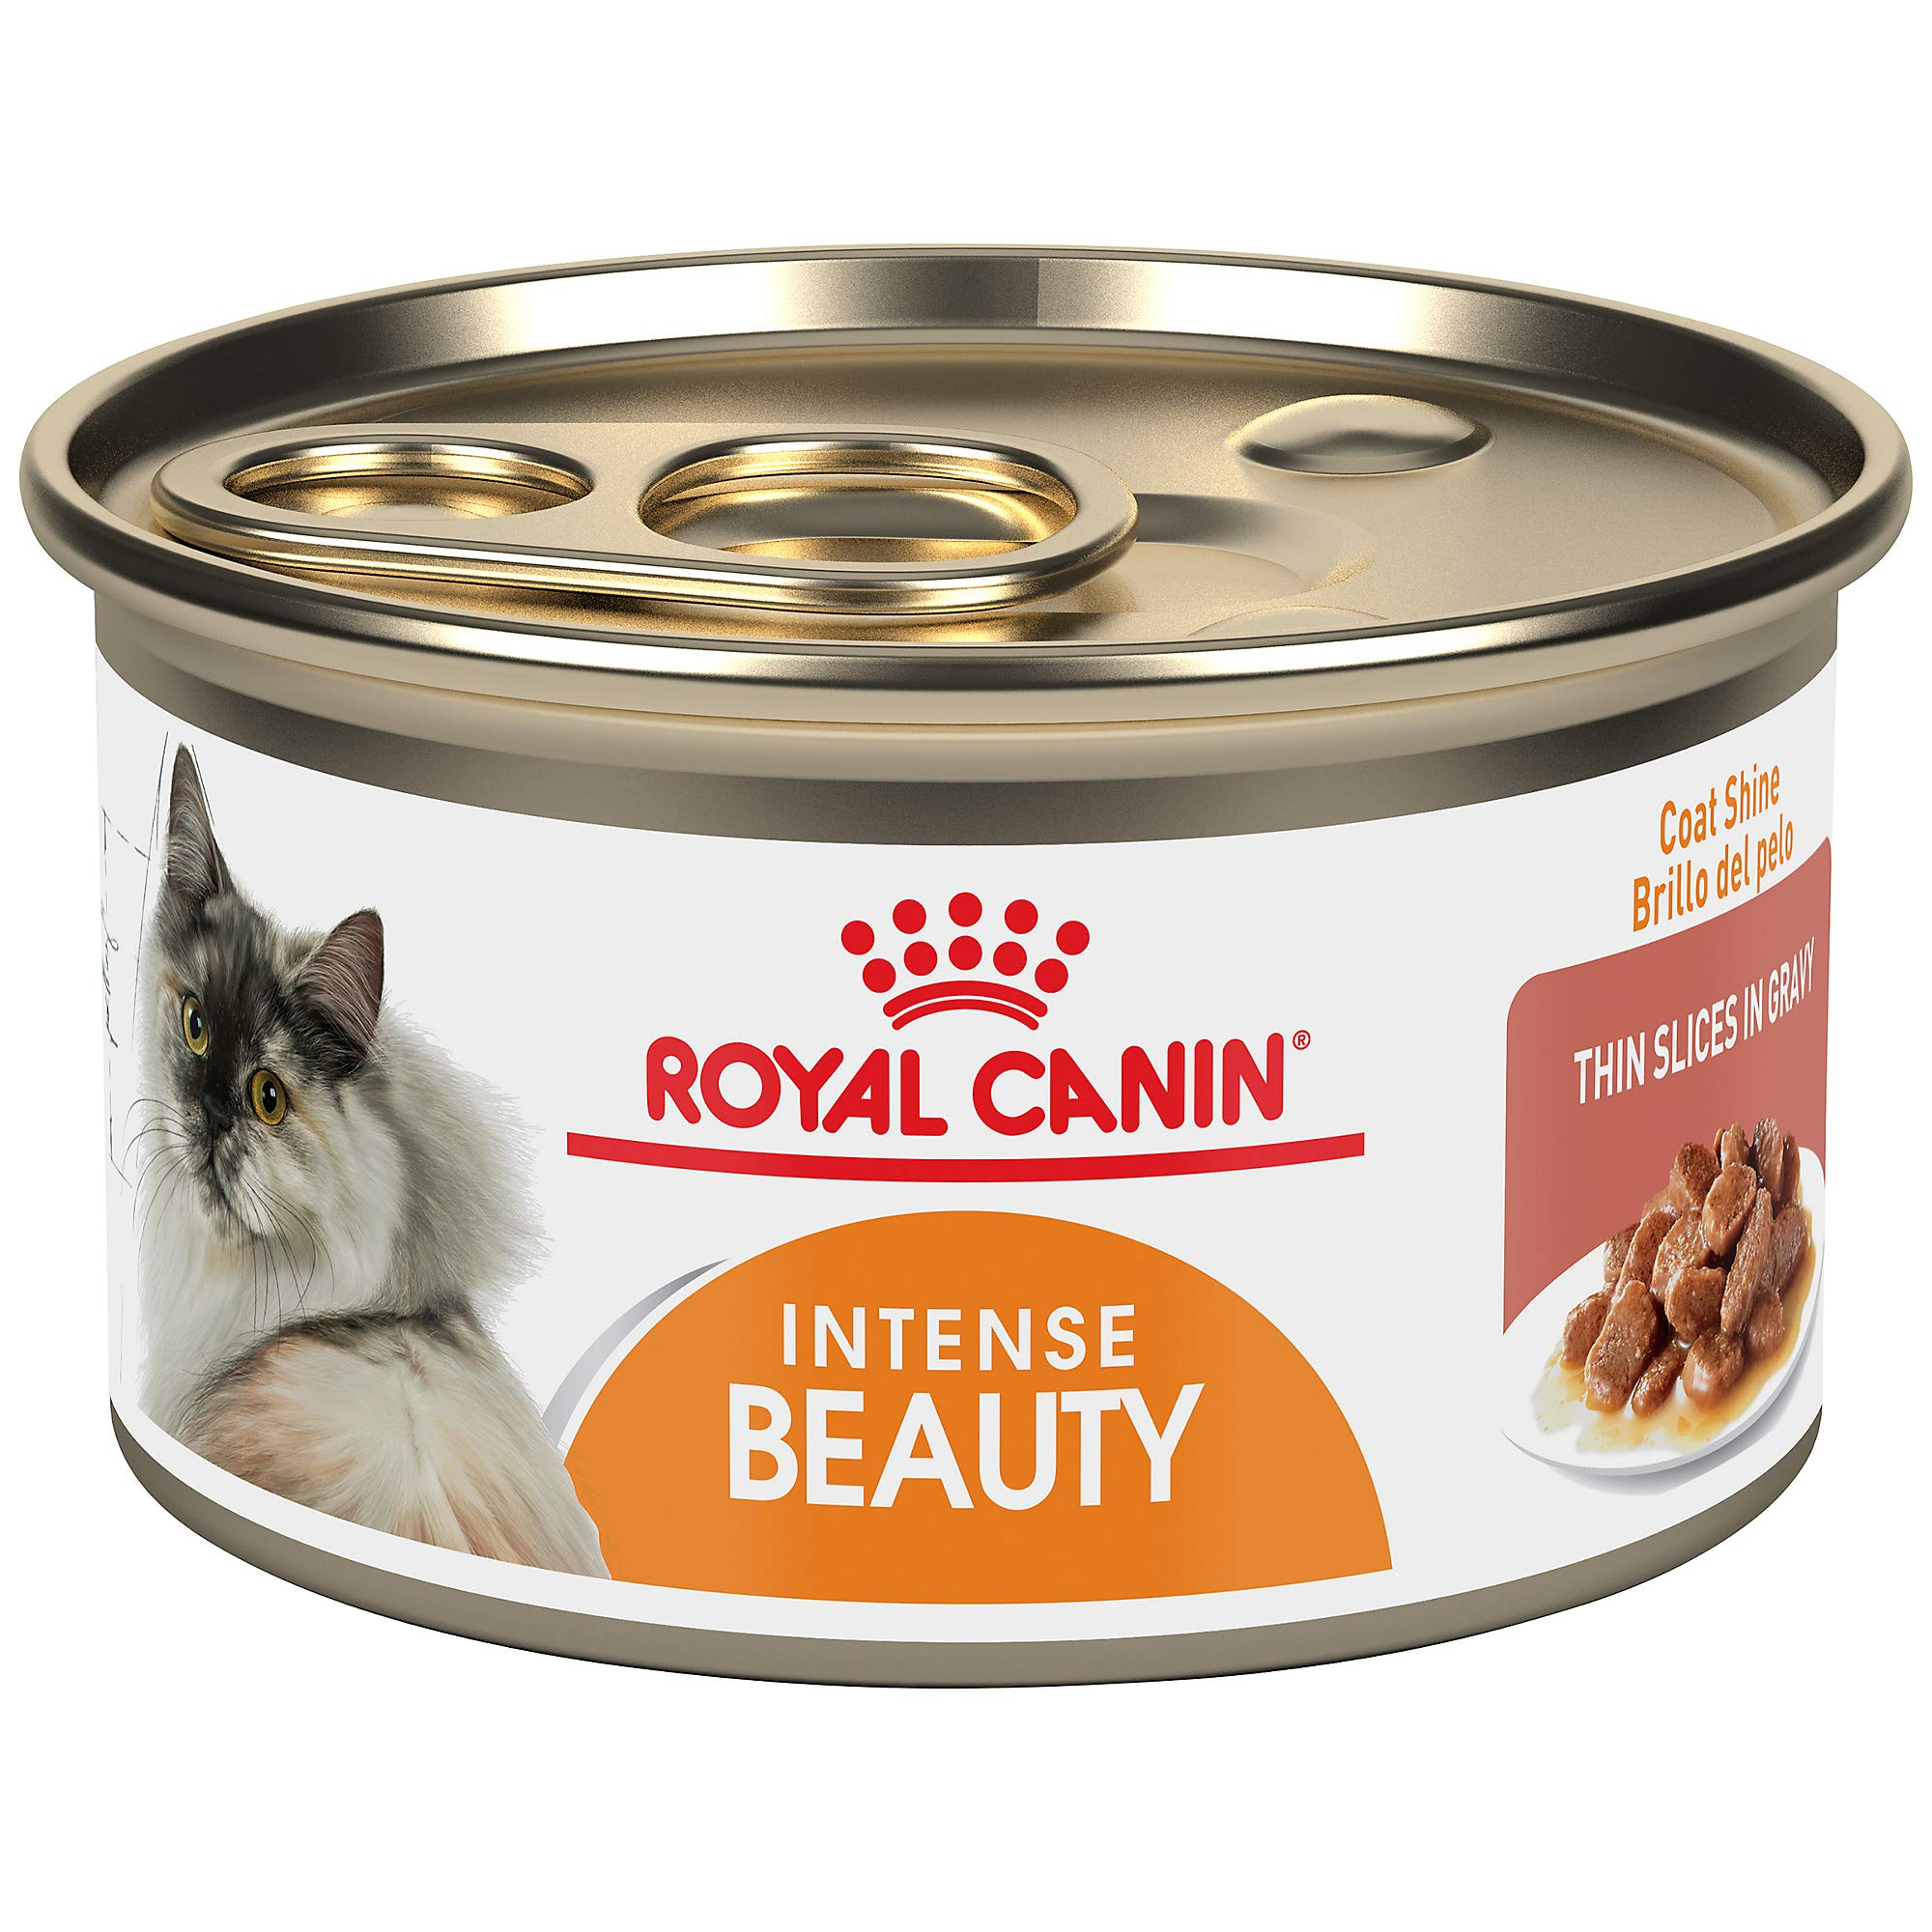 Royal Canin Intense Beauty Thin Slices in Gravy Wet Cat Food for Skin & Coat, 3 oz. can by Royal Canin